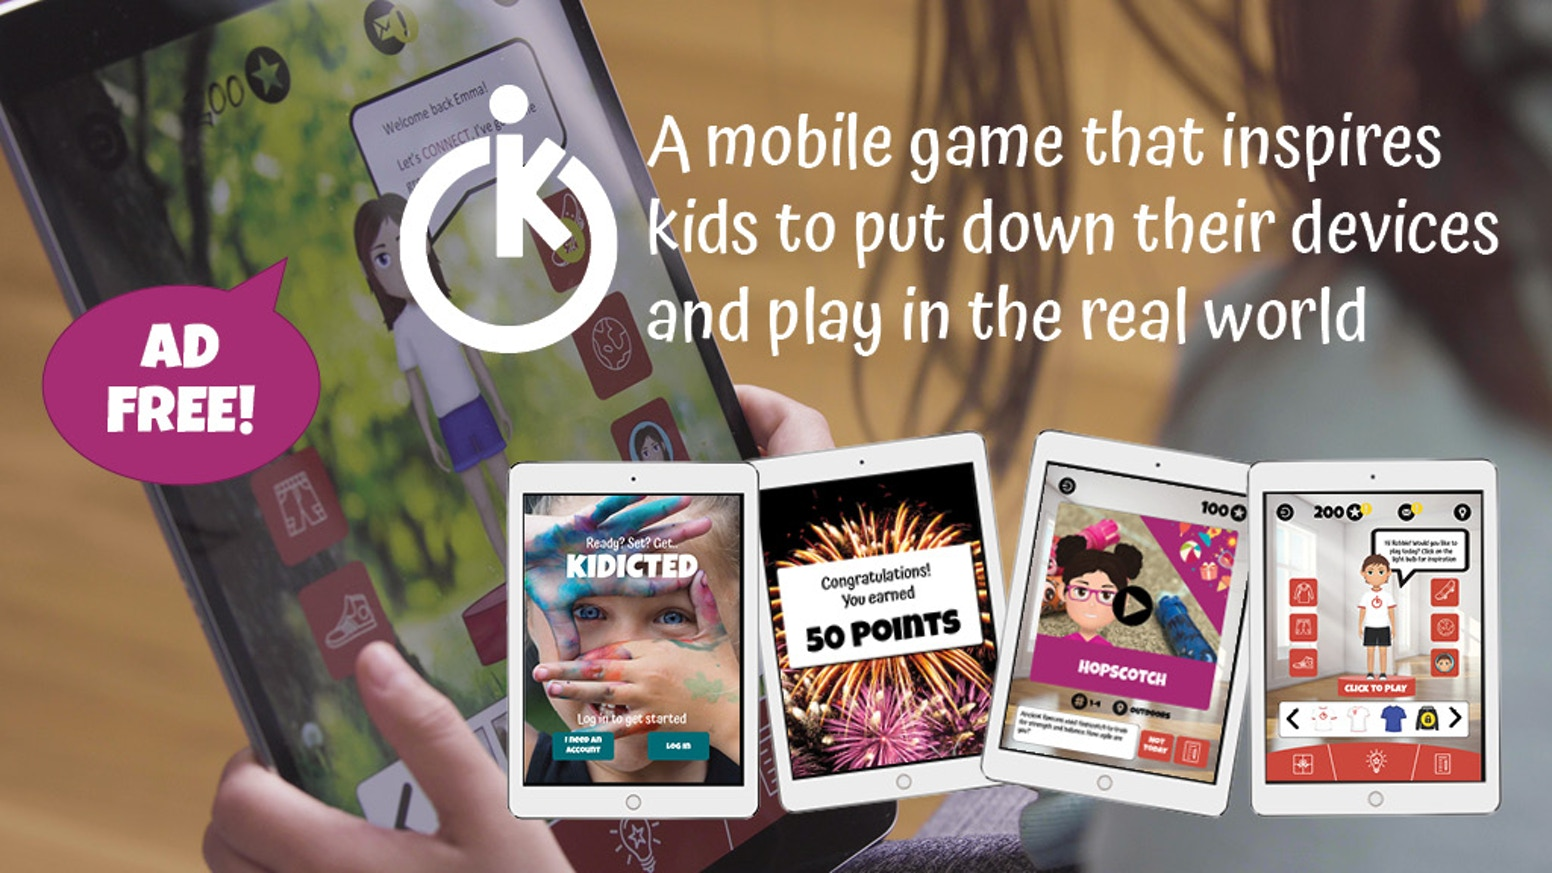 A mobile app that gets kids to put down their devices and rewards them for play in the real world. Missed our Kickstarter? You can now buy KIDICTED on the Apple App Store. Android... hang tight - we're still testing :)